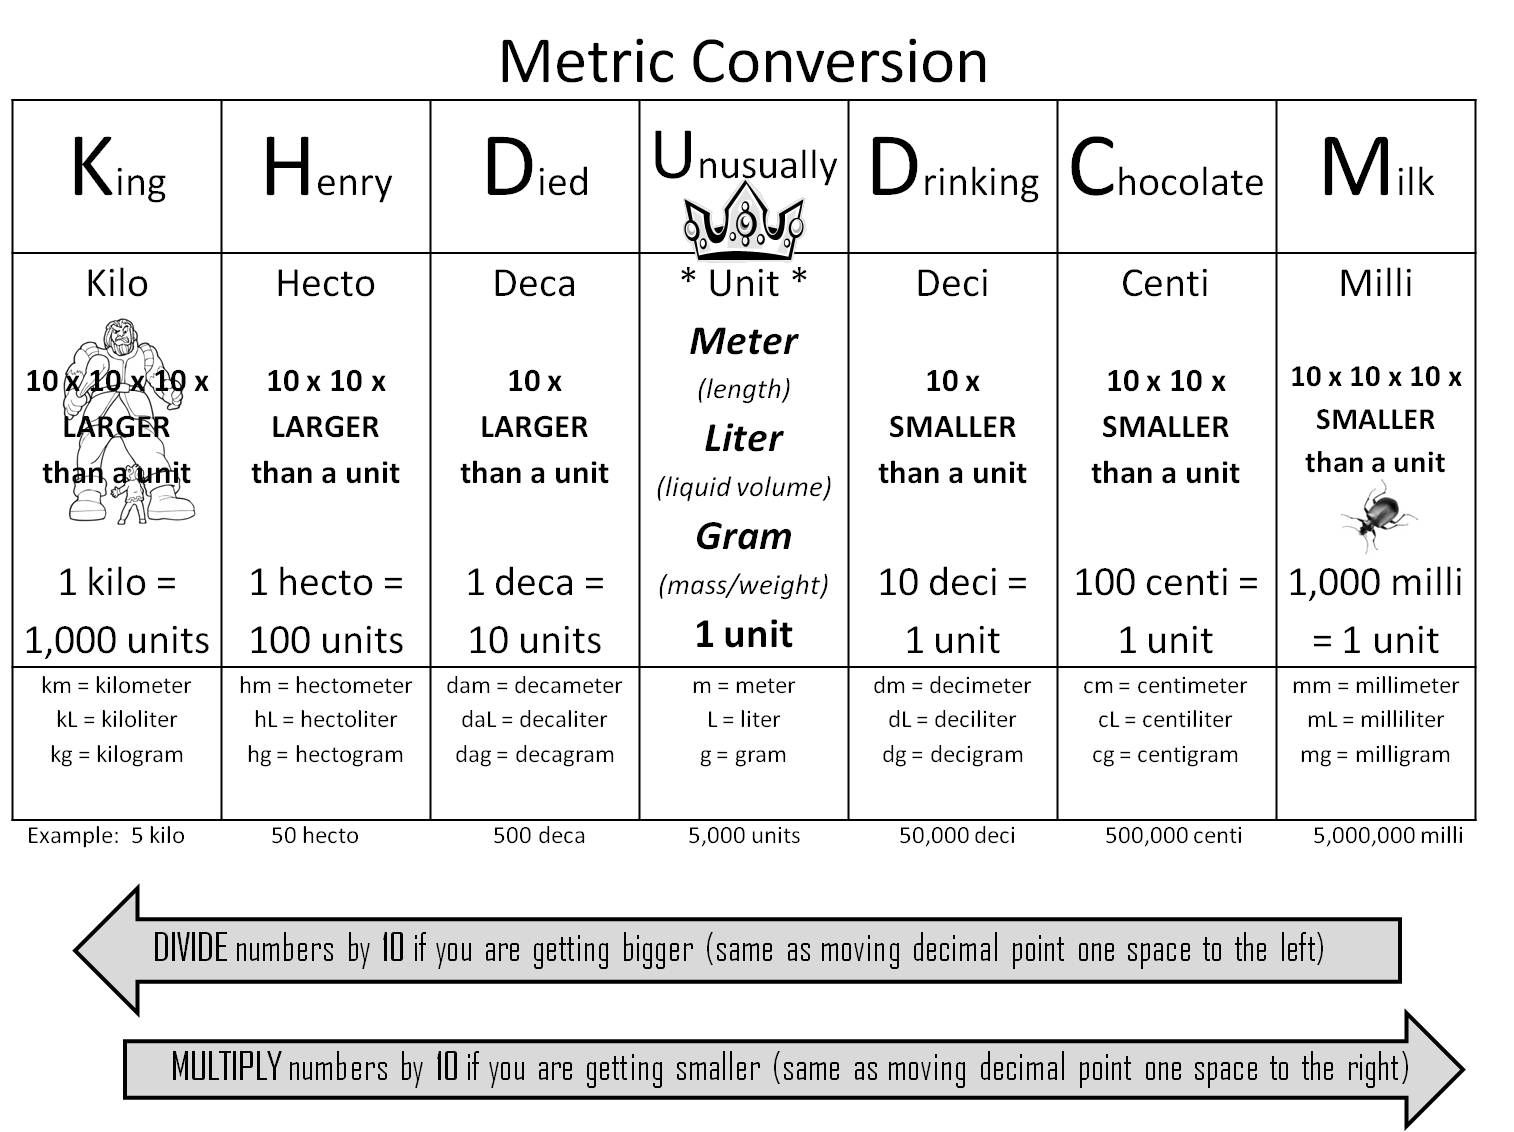 Math  Metric Conversion Trick Using King Henry Died Unusually